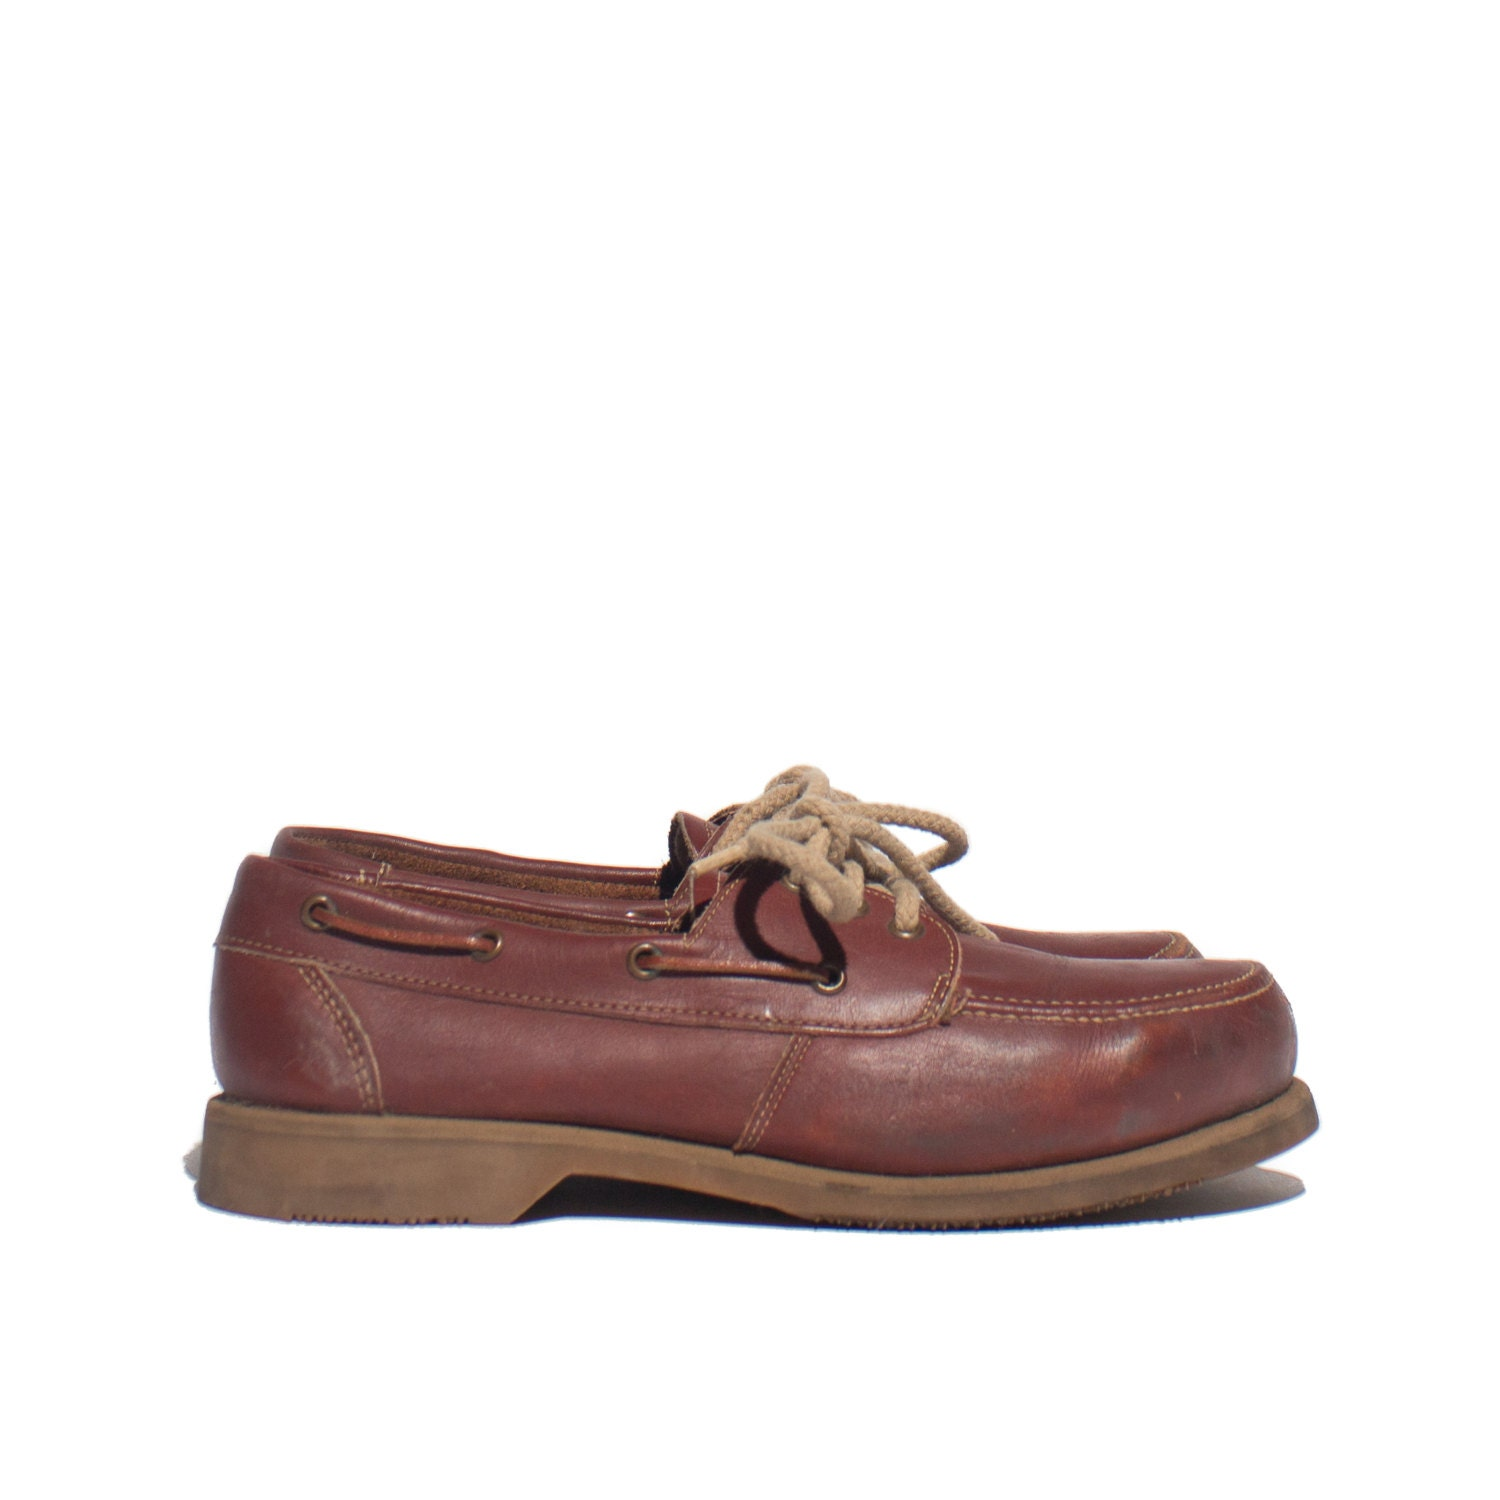 Brilliant Details About Red Wing Shoes Women39s Victoria Lace Up Leather 110 NEW